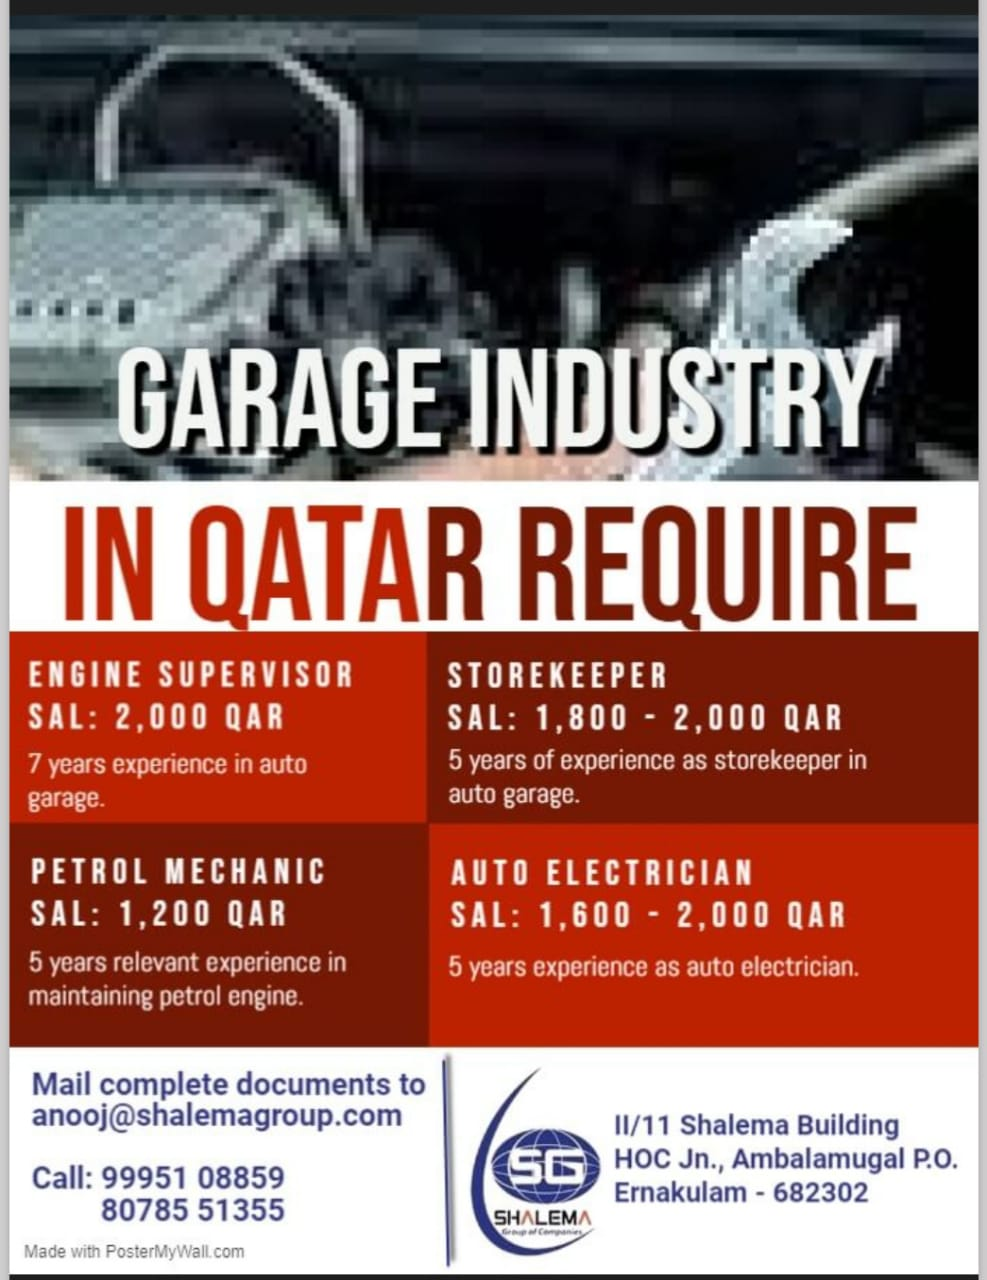 REQUIREMENT FOR GARAGE INDUSTRY IN QATAR